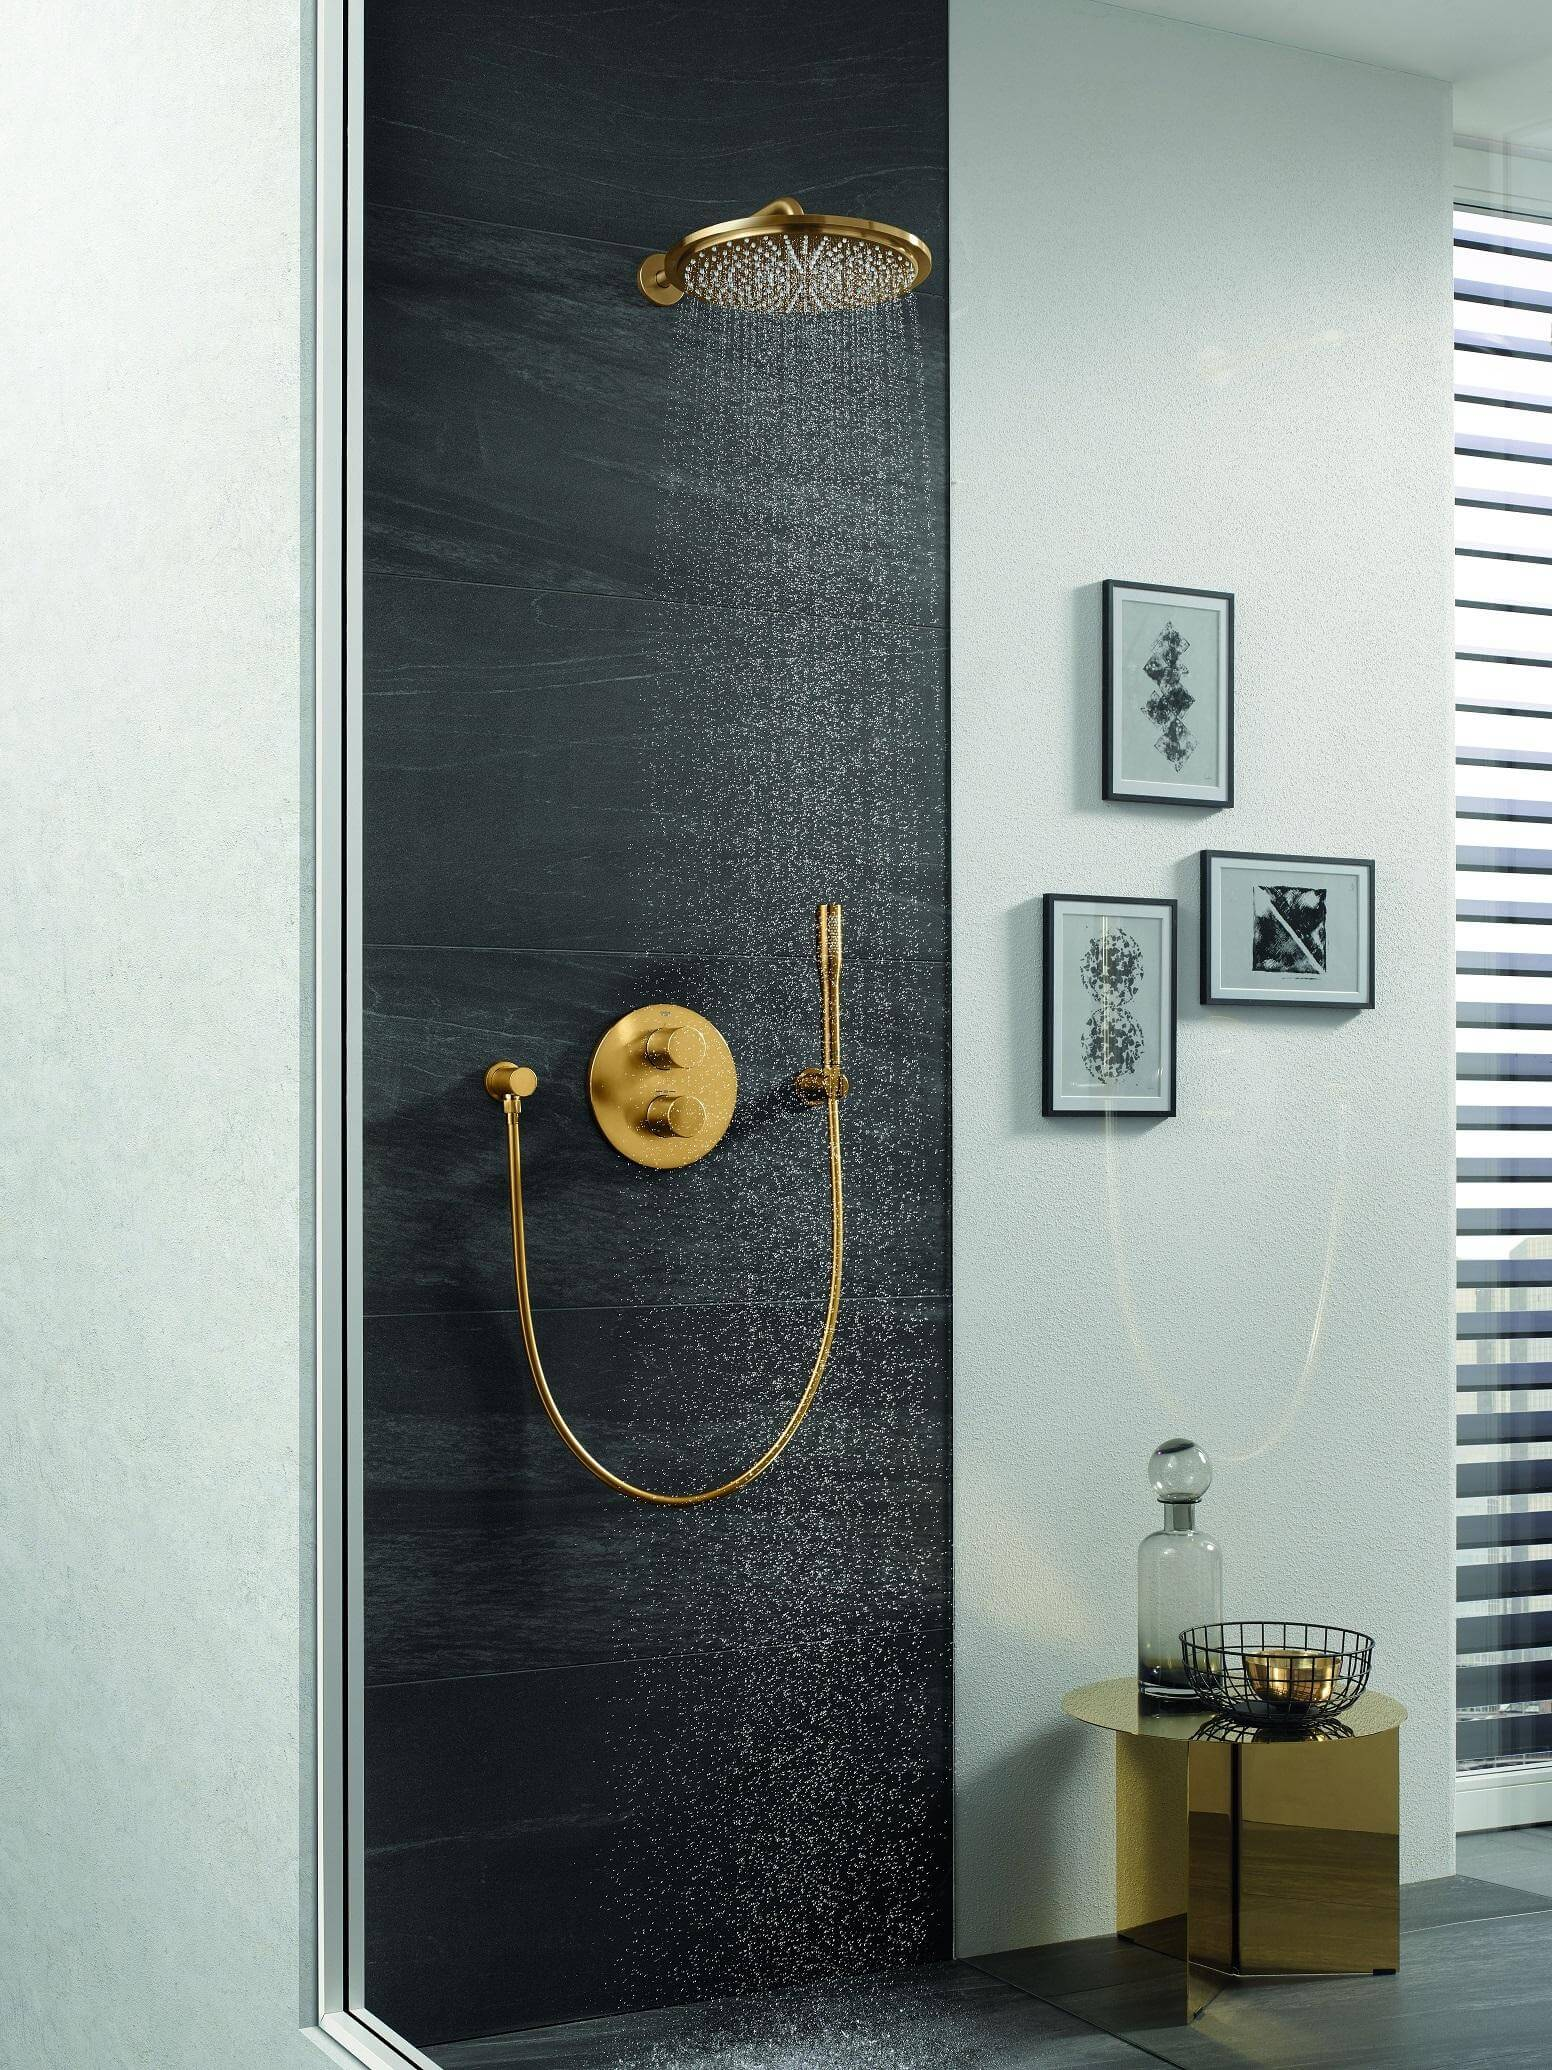 regendusche grohe elegant das bild wird geladen with regendusche grohe cool with regendusche. Black Bedroom Furniture Sets. Home Design Ideas